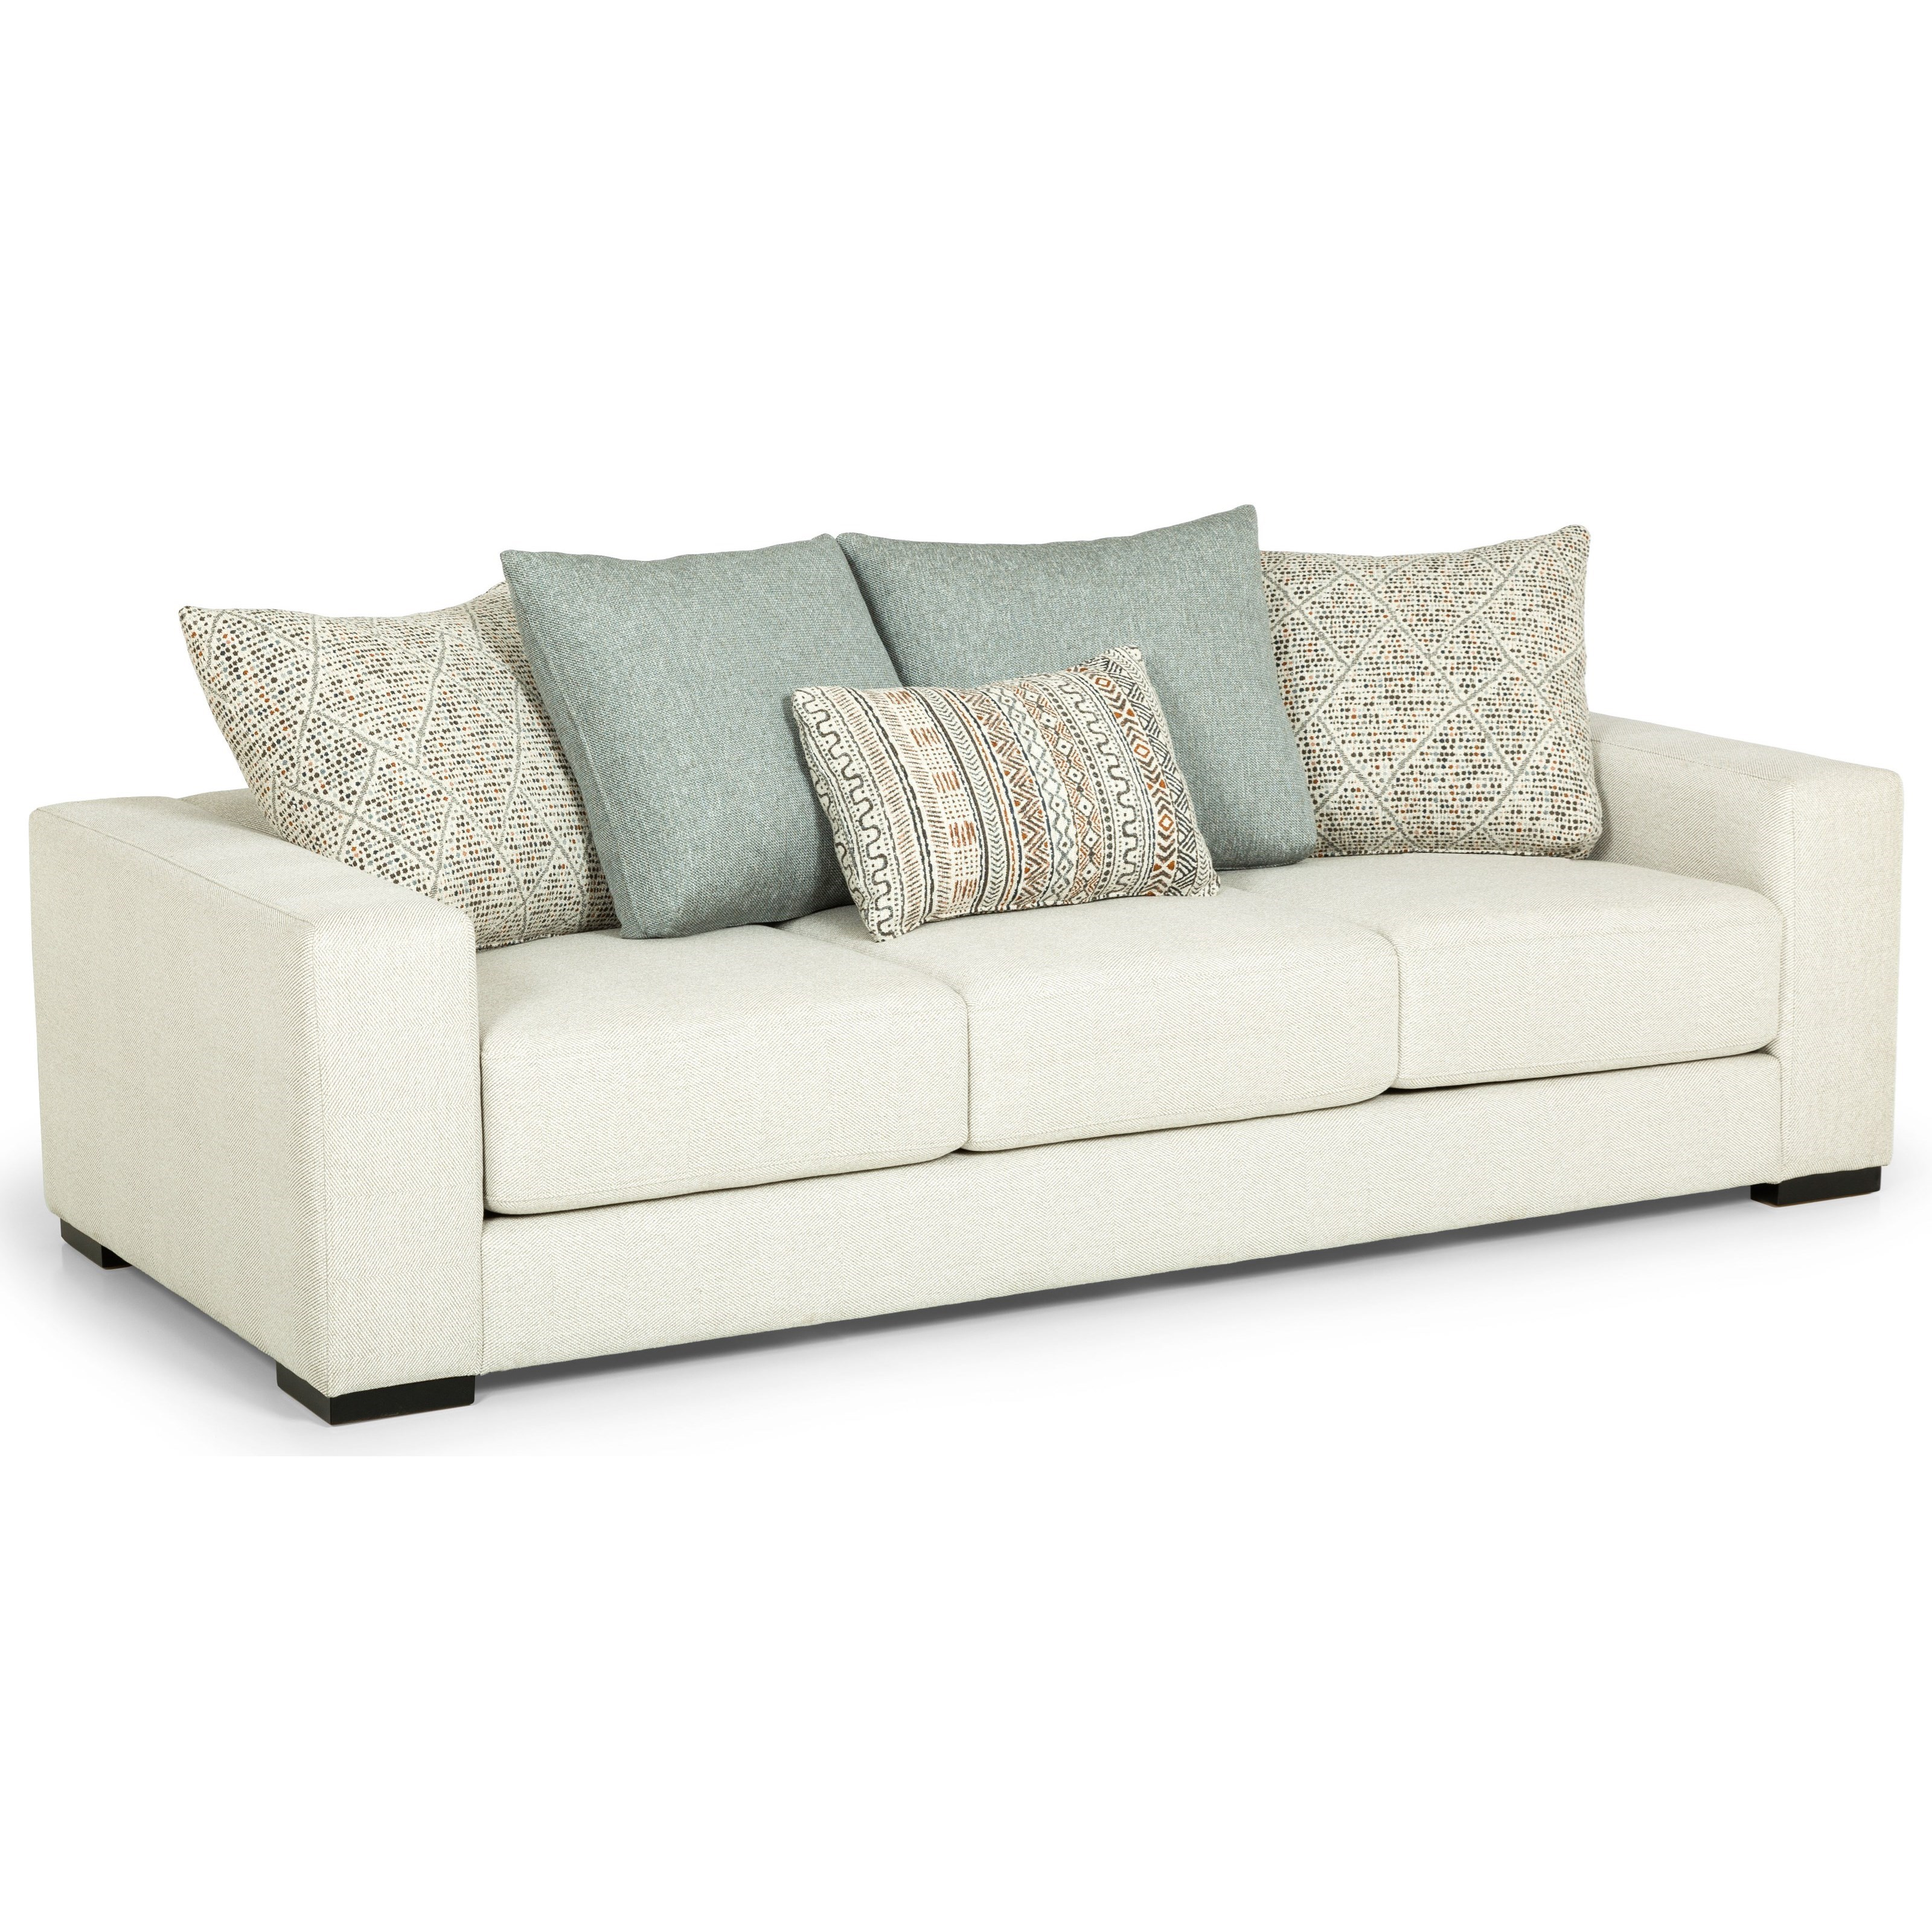 550 Sofa by Sunset Home at Sadler's Home Furnishings